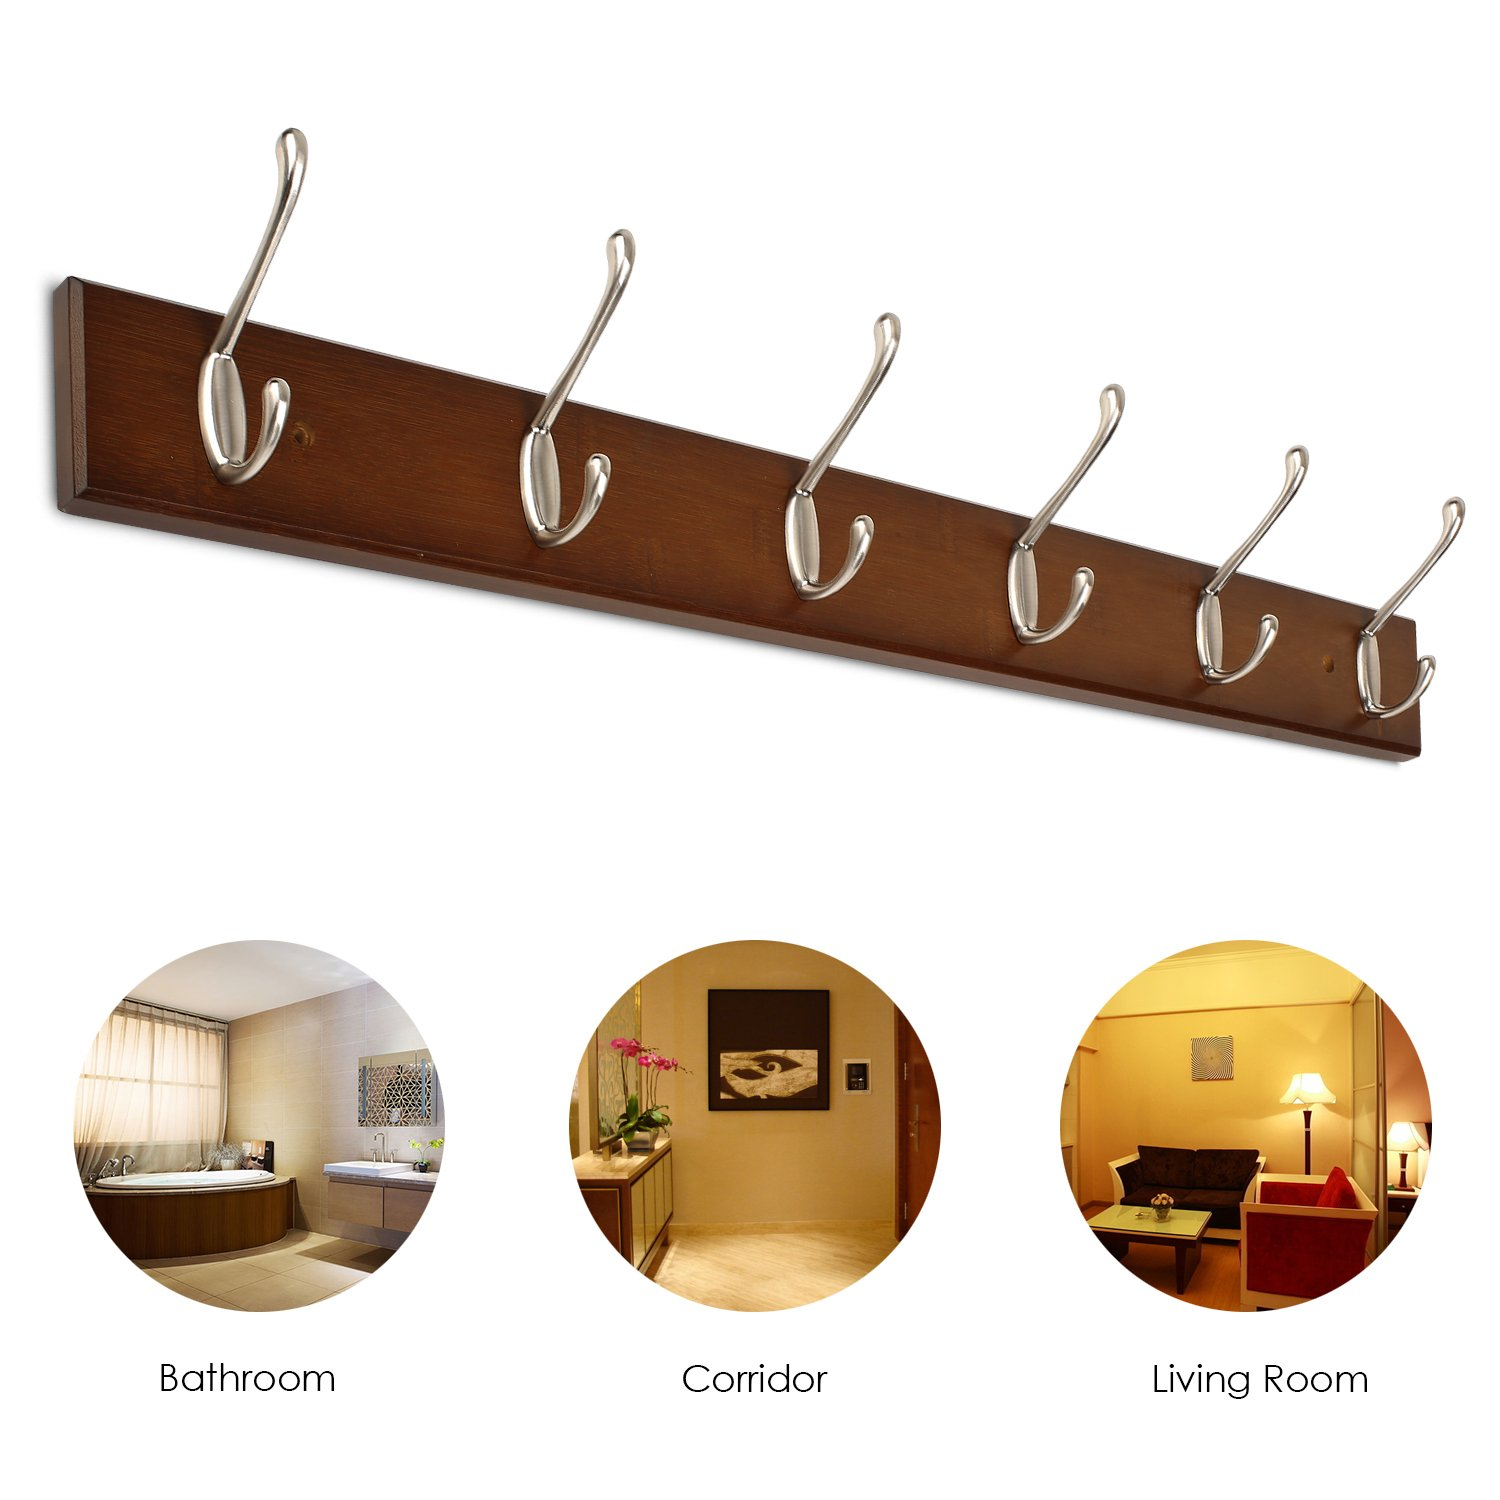 Hats Scarves Retro color Coats Homfa Bamboo Hook Rack with 6 Dual Scroll Wall Hanger Hooks for Jackets